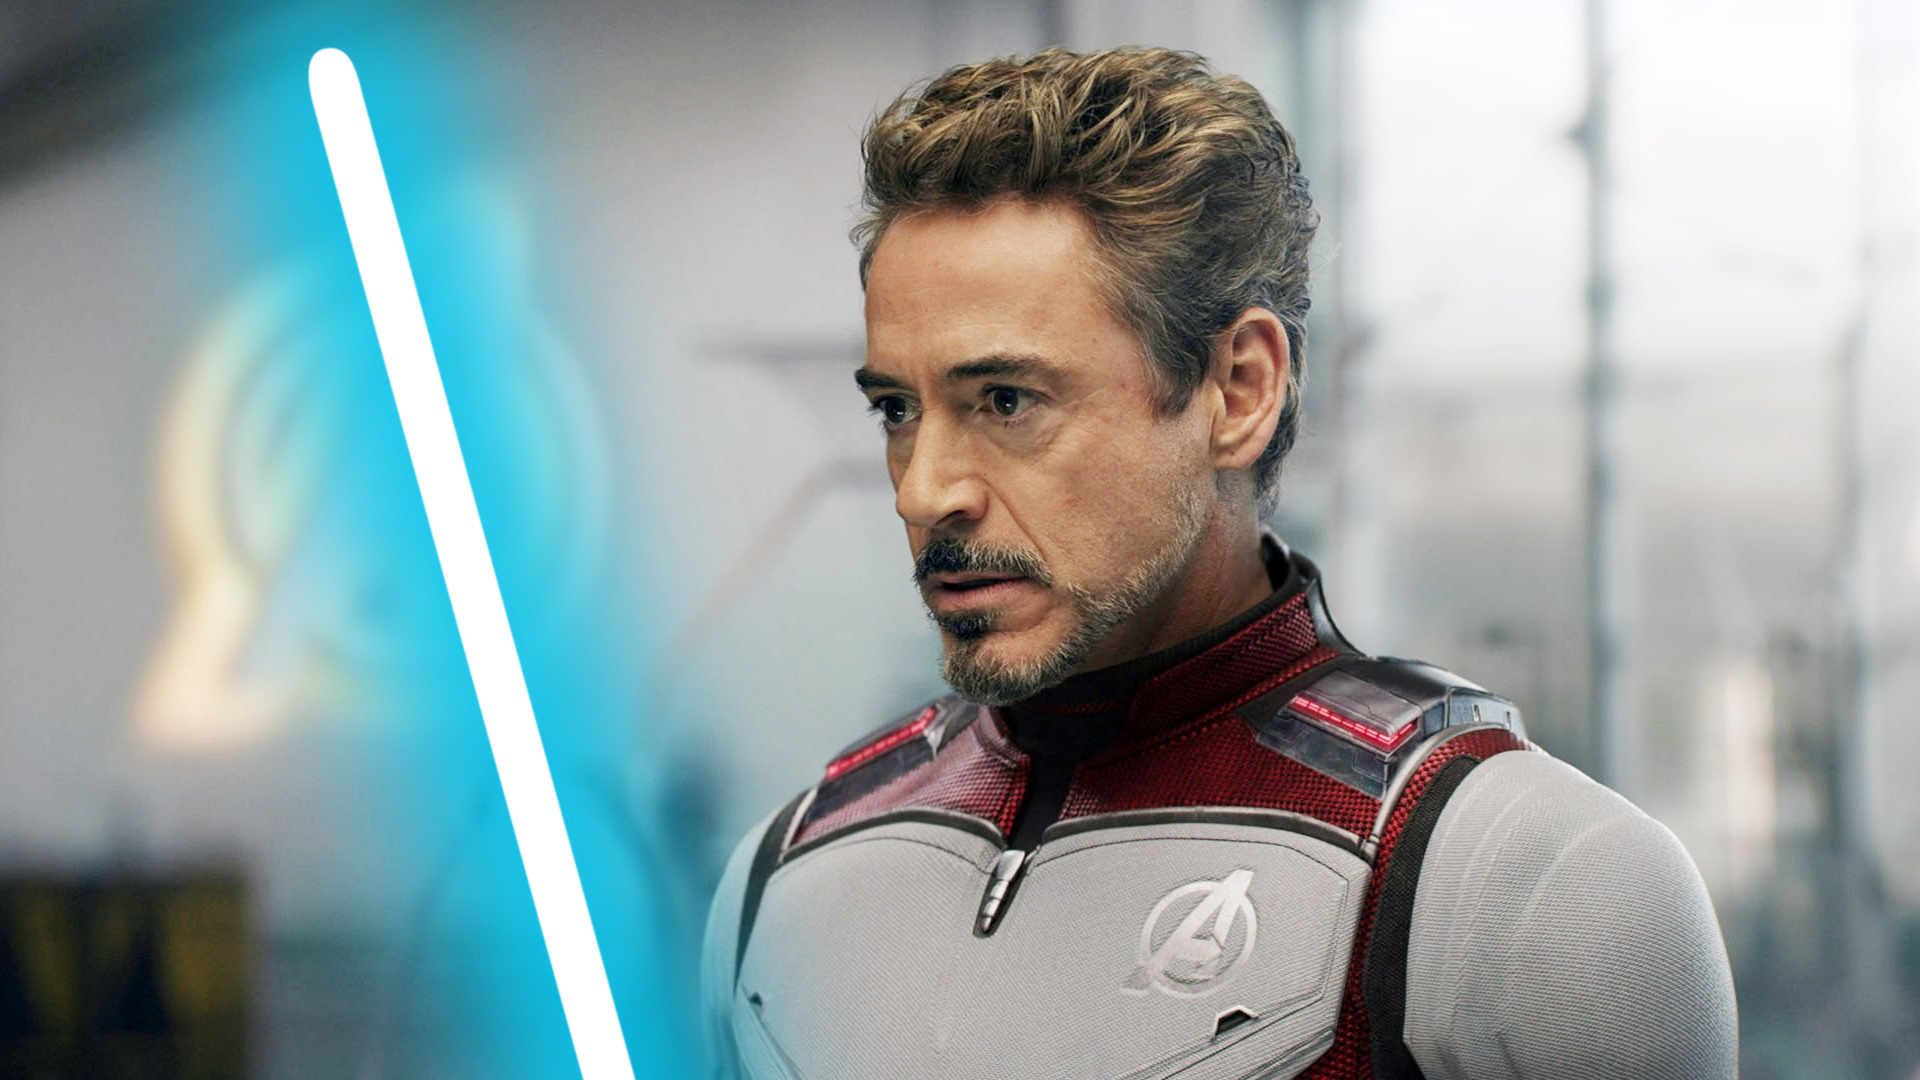 Robert Downey Jr. Reportedly Joining Star Wars